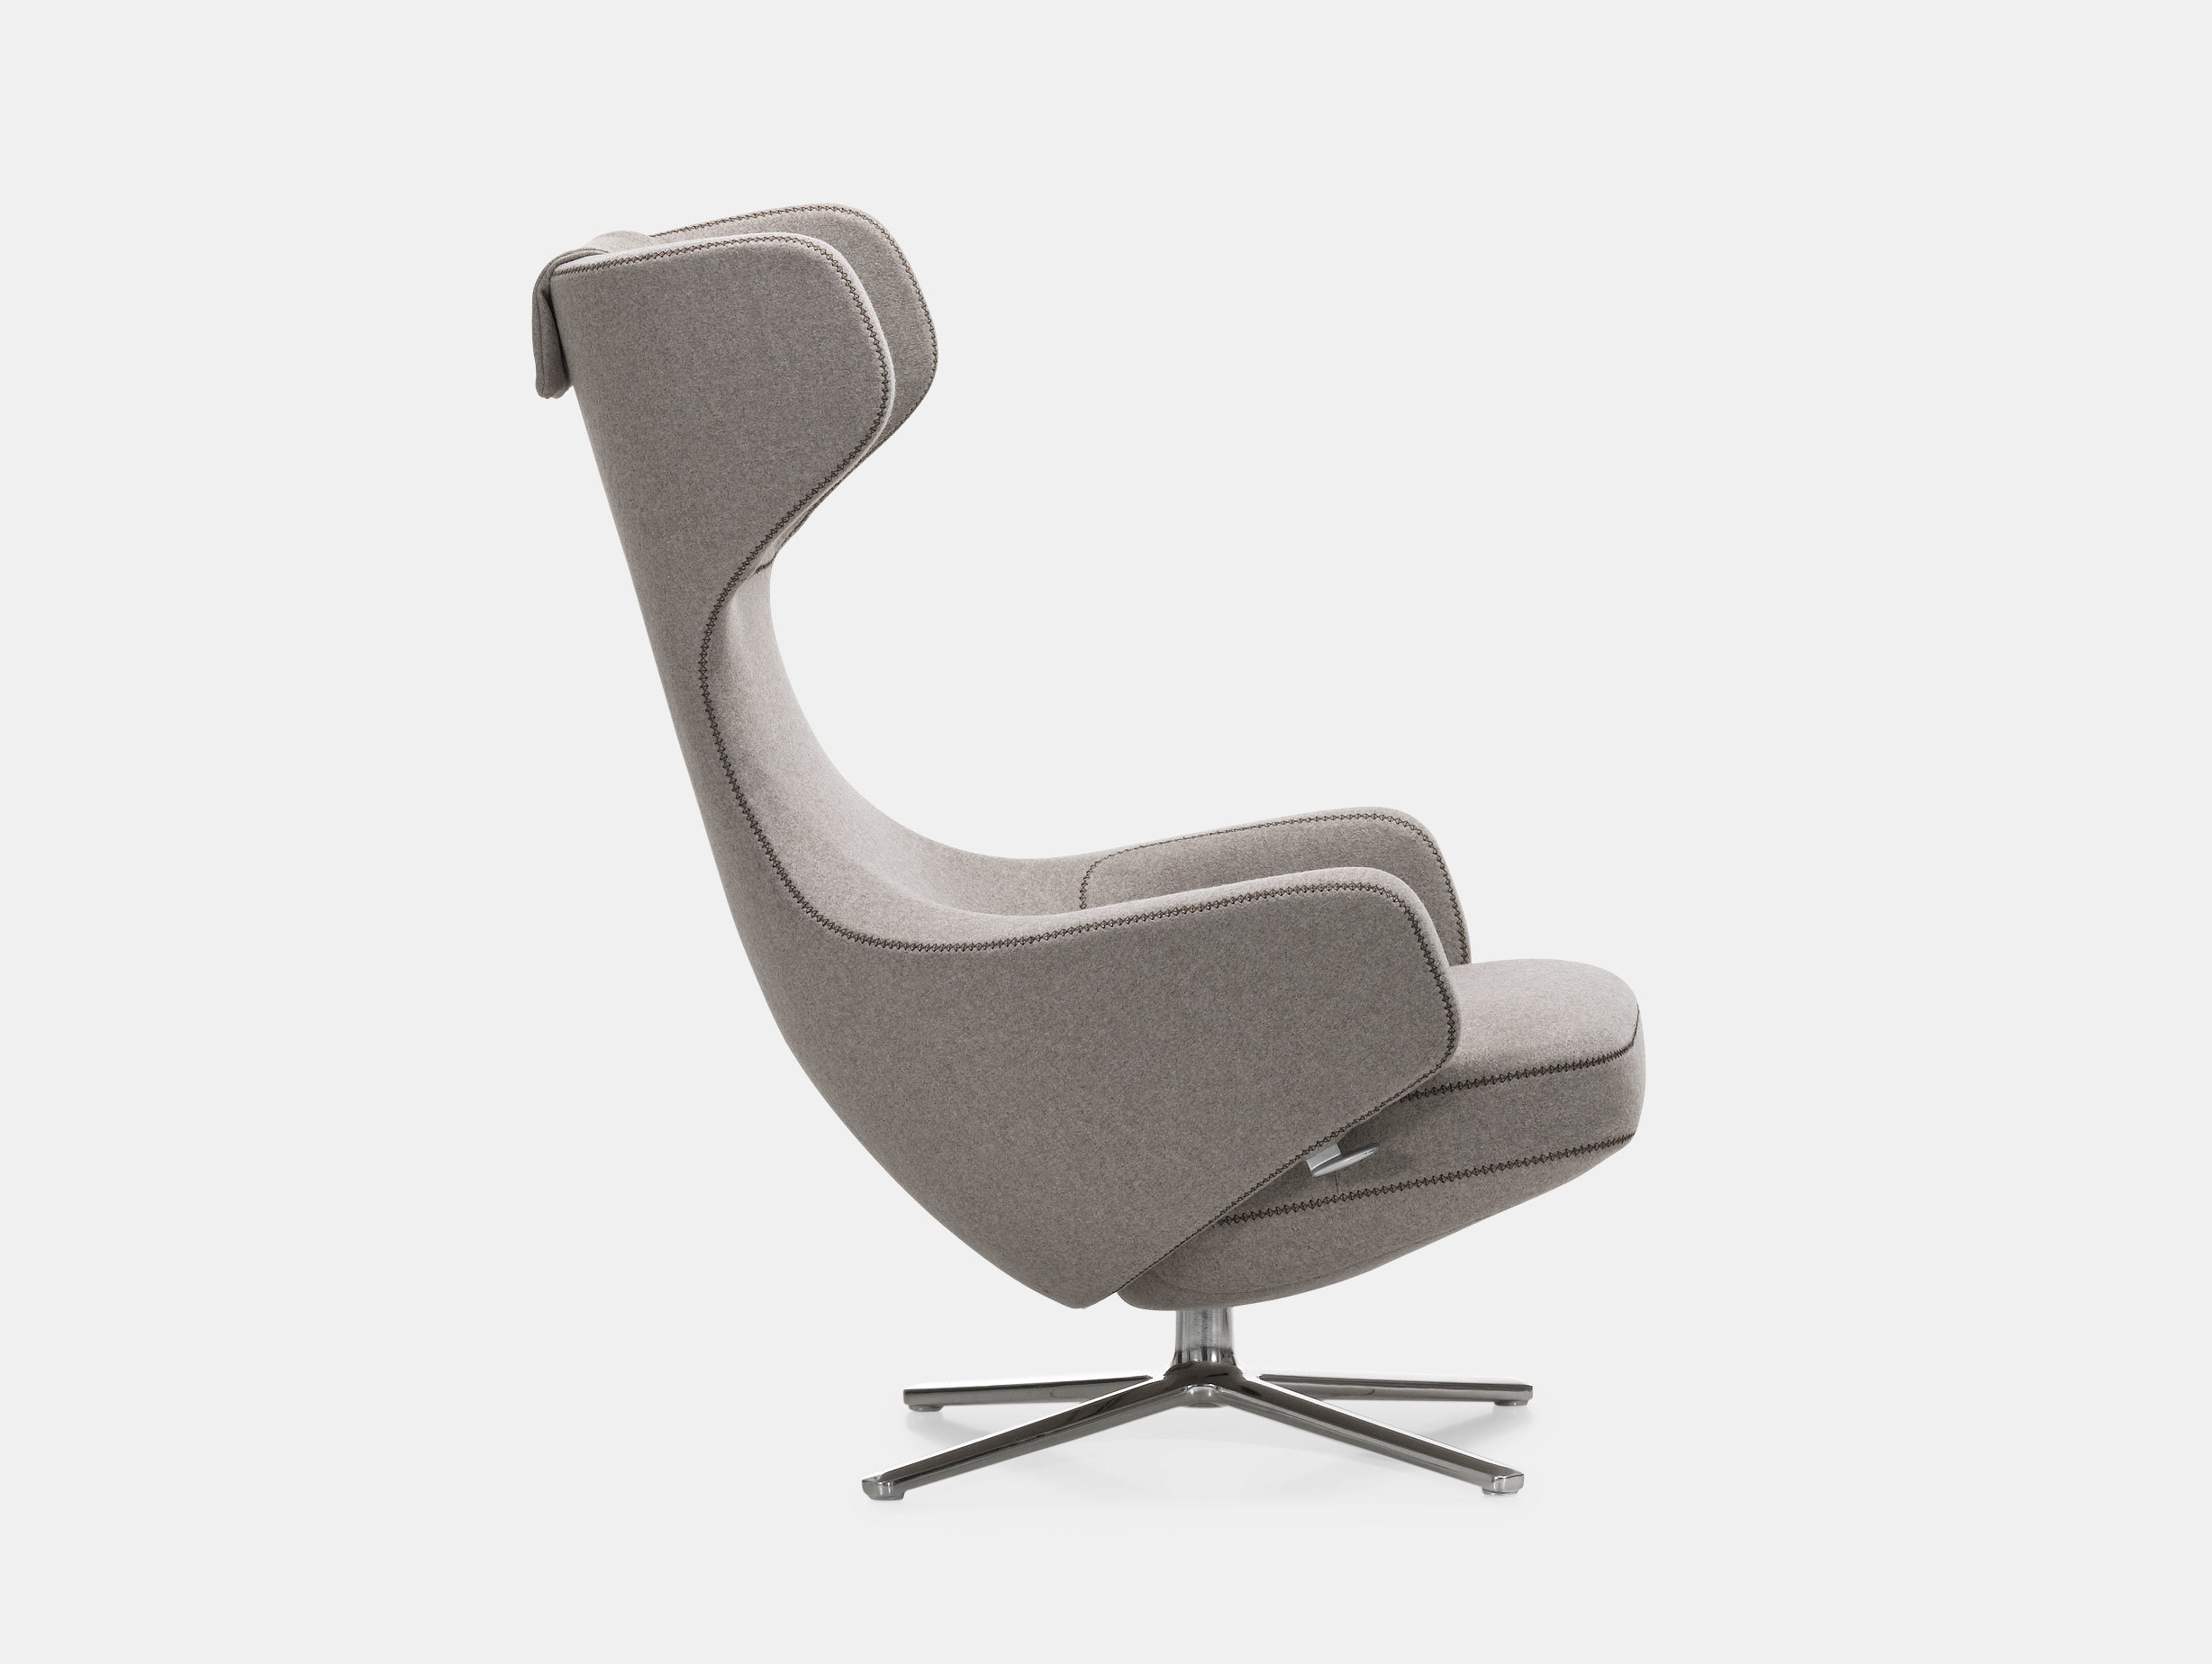 Grand Repos Lounge Chair image 1